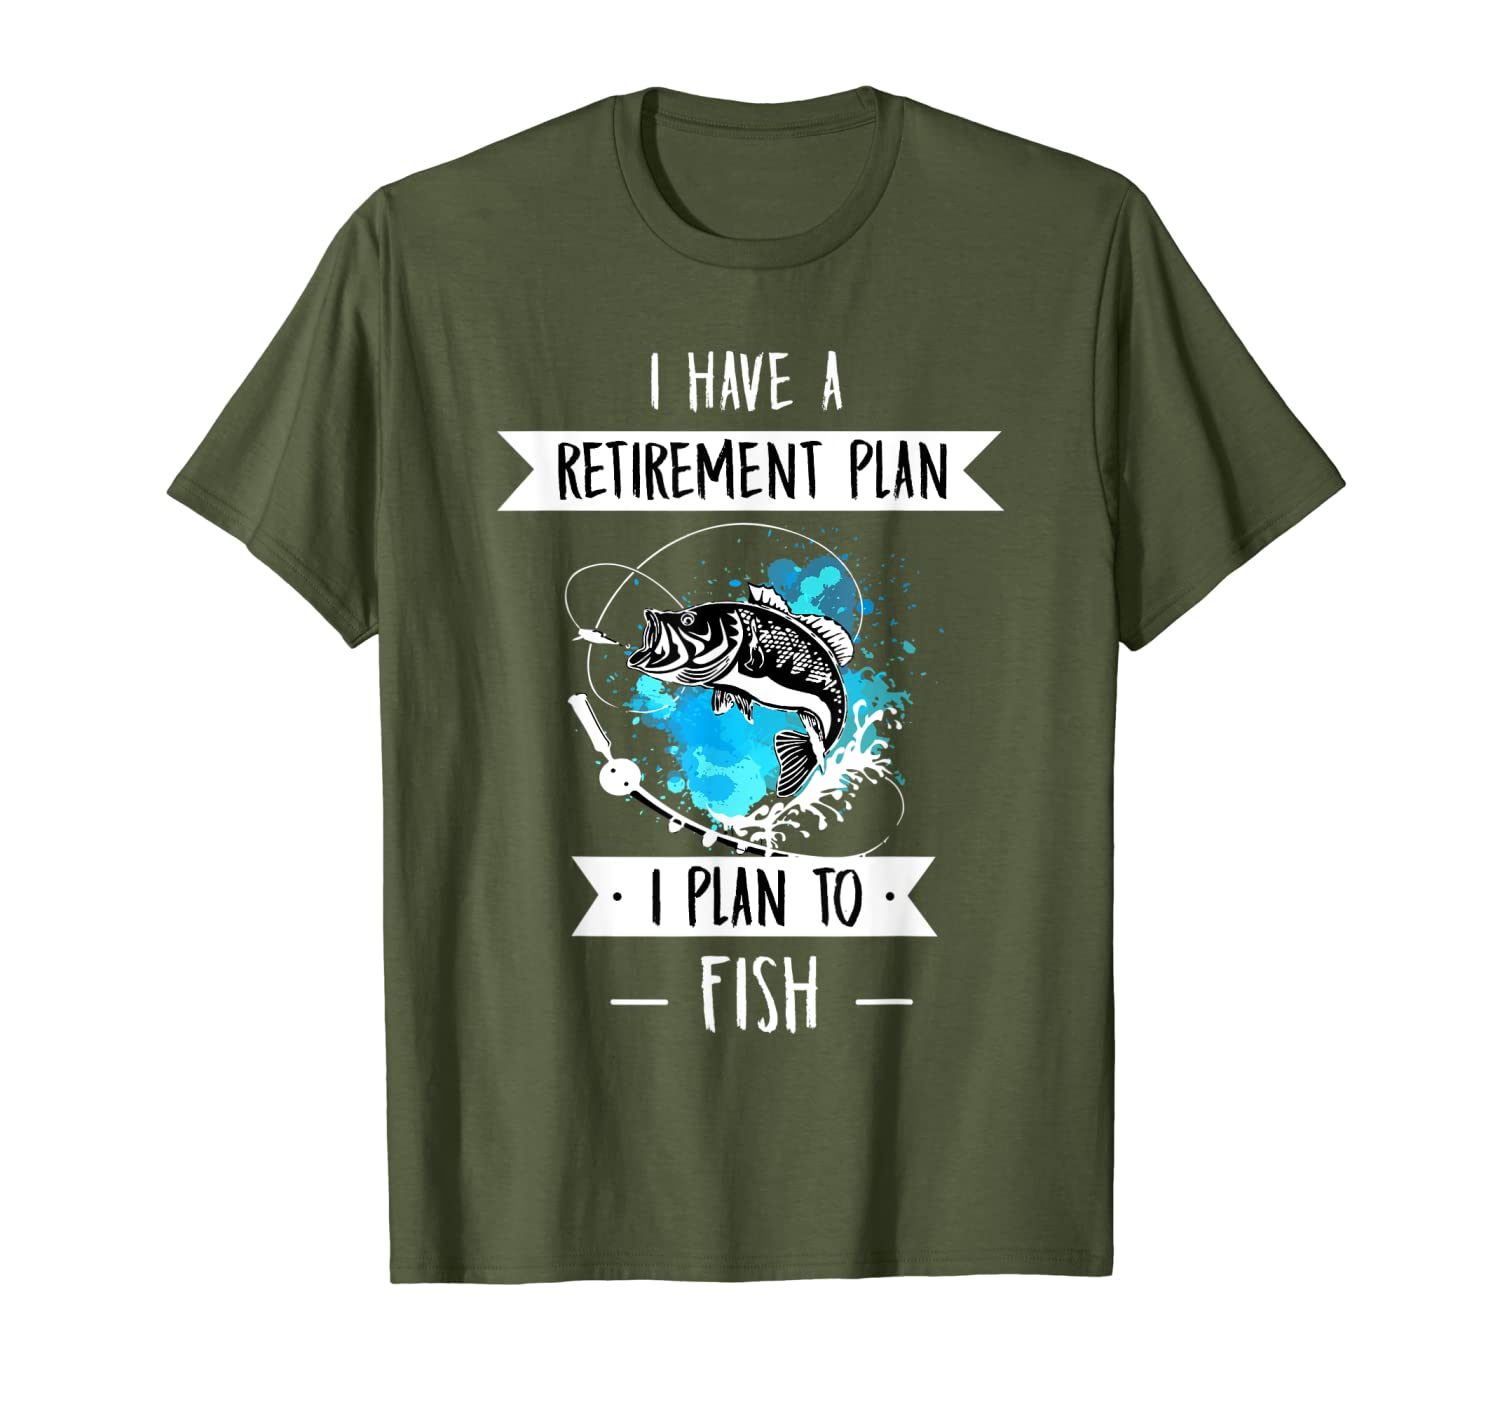 Funny Fishing Gear for Guys Mens Retirement T-Shirt Unisex Tshirt